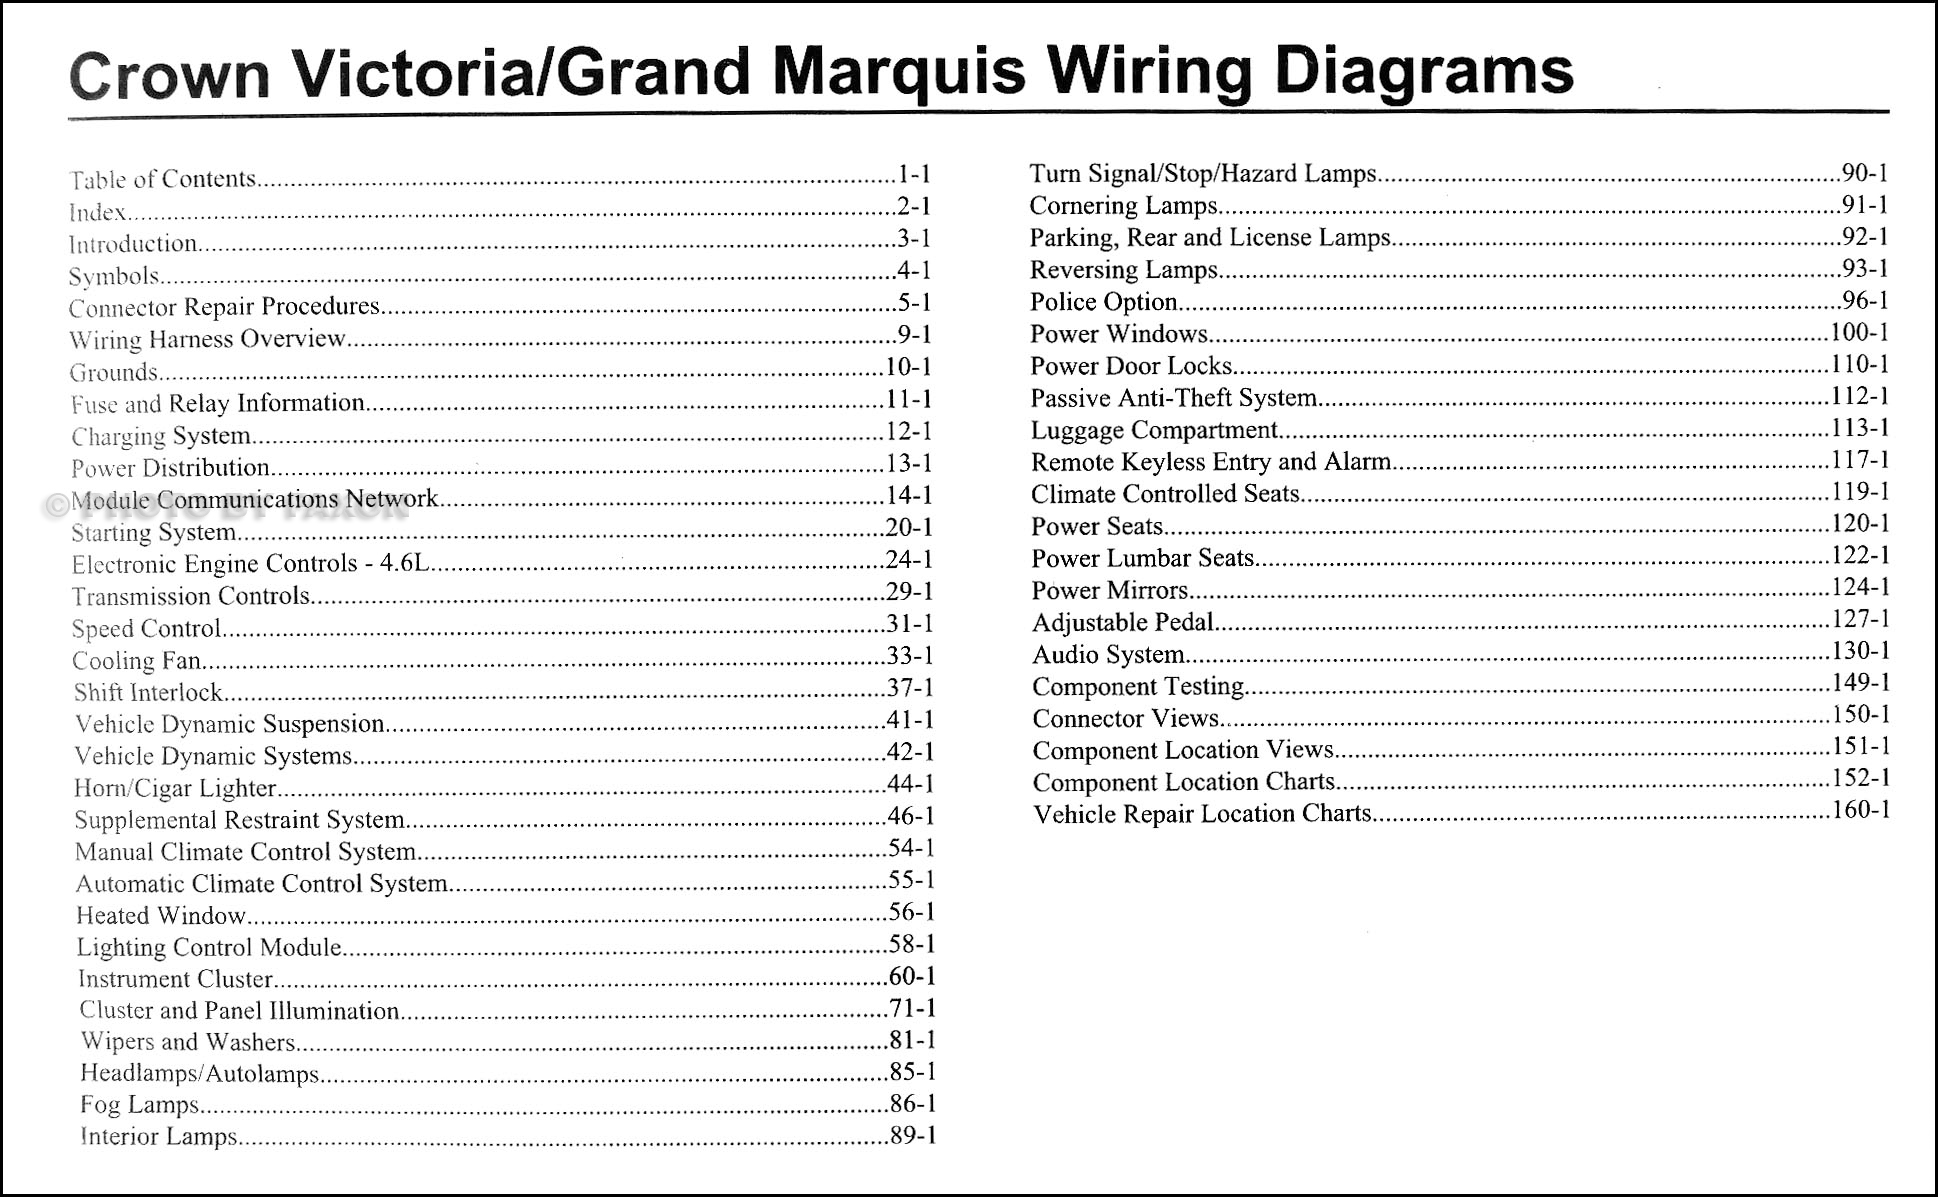 crown vic wiring diagram schematics wiring diagrams u2022 rh seniorlivinguniversity co Crown Vic Wiring-Diagram 2001 Crown Victoria Wiring Diagram